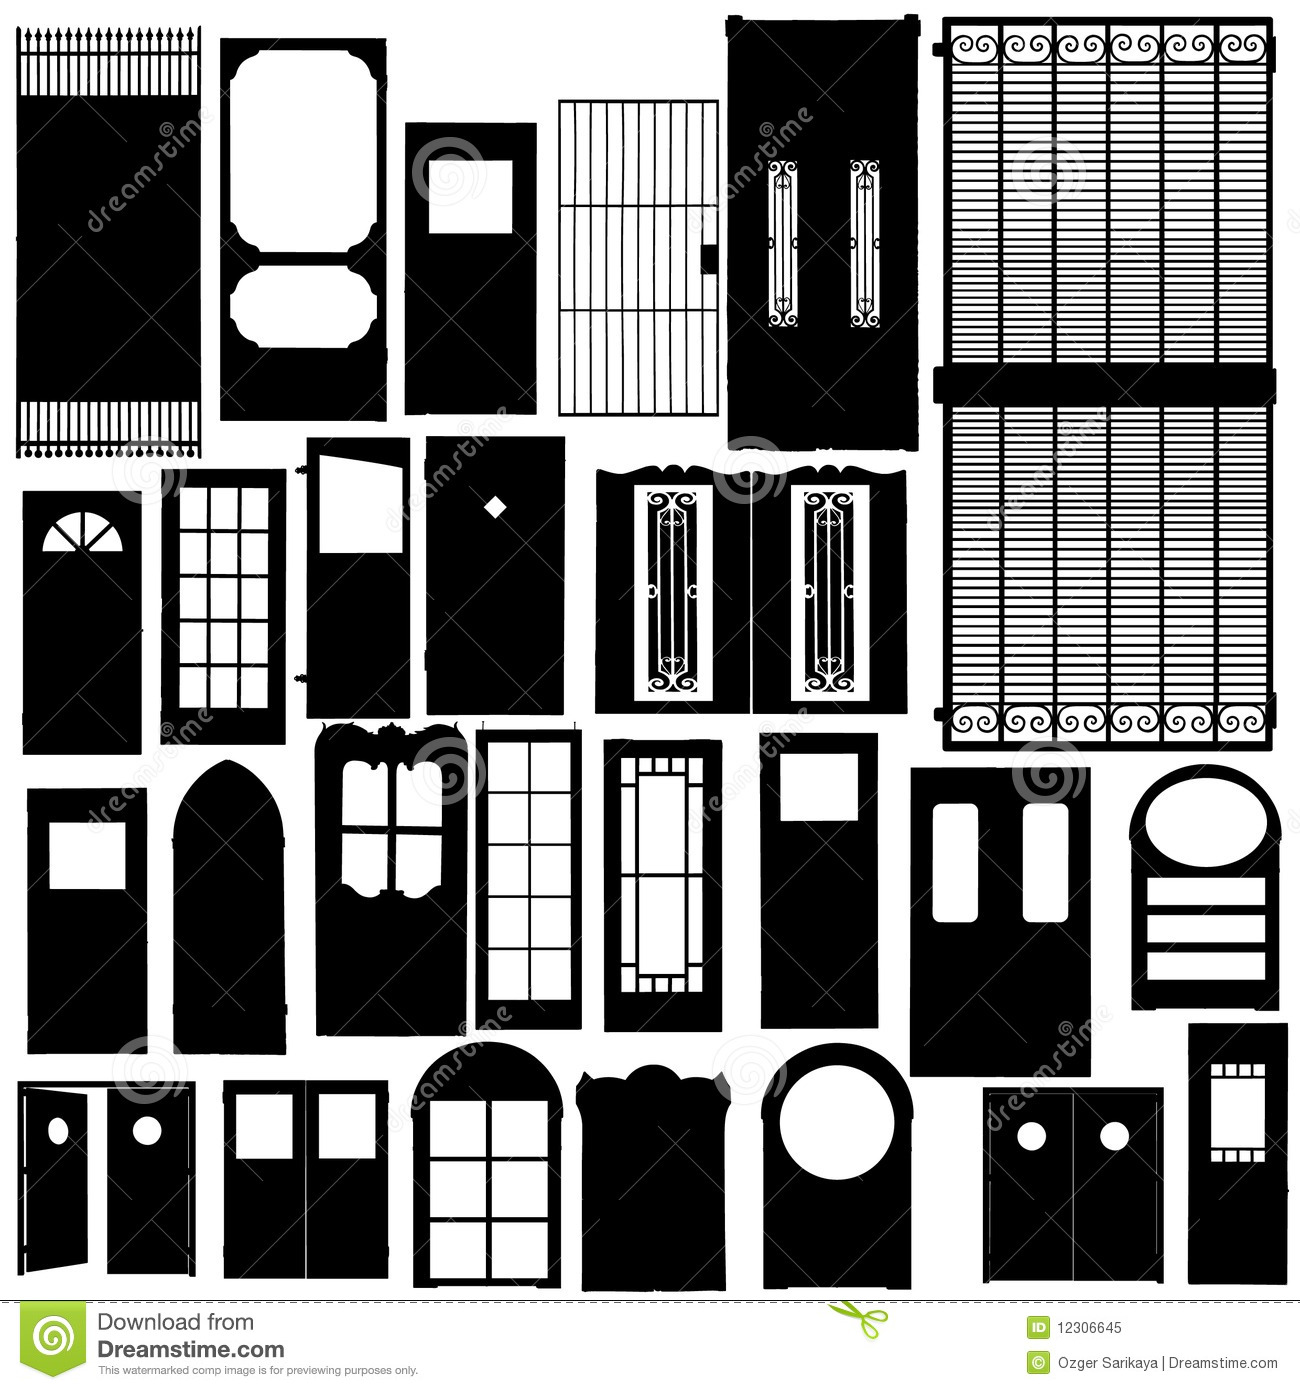 Kitchen Window Clip Art: Doors Silhouette Set Stock Vector. Illustration Of Style